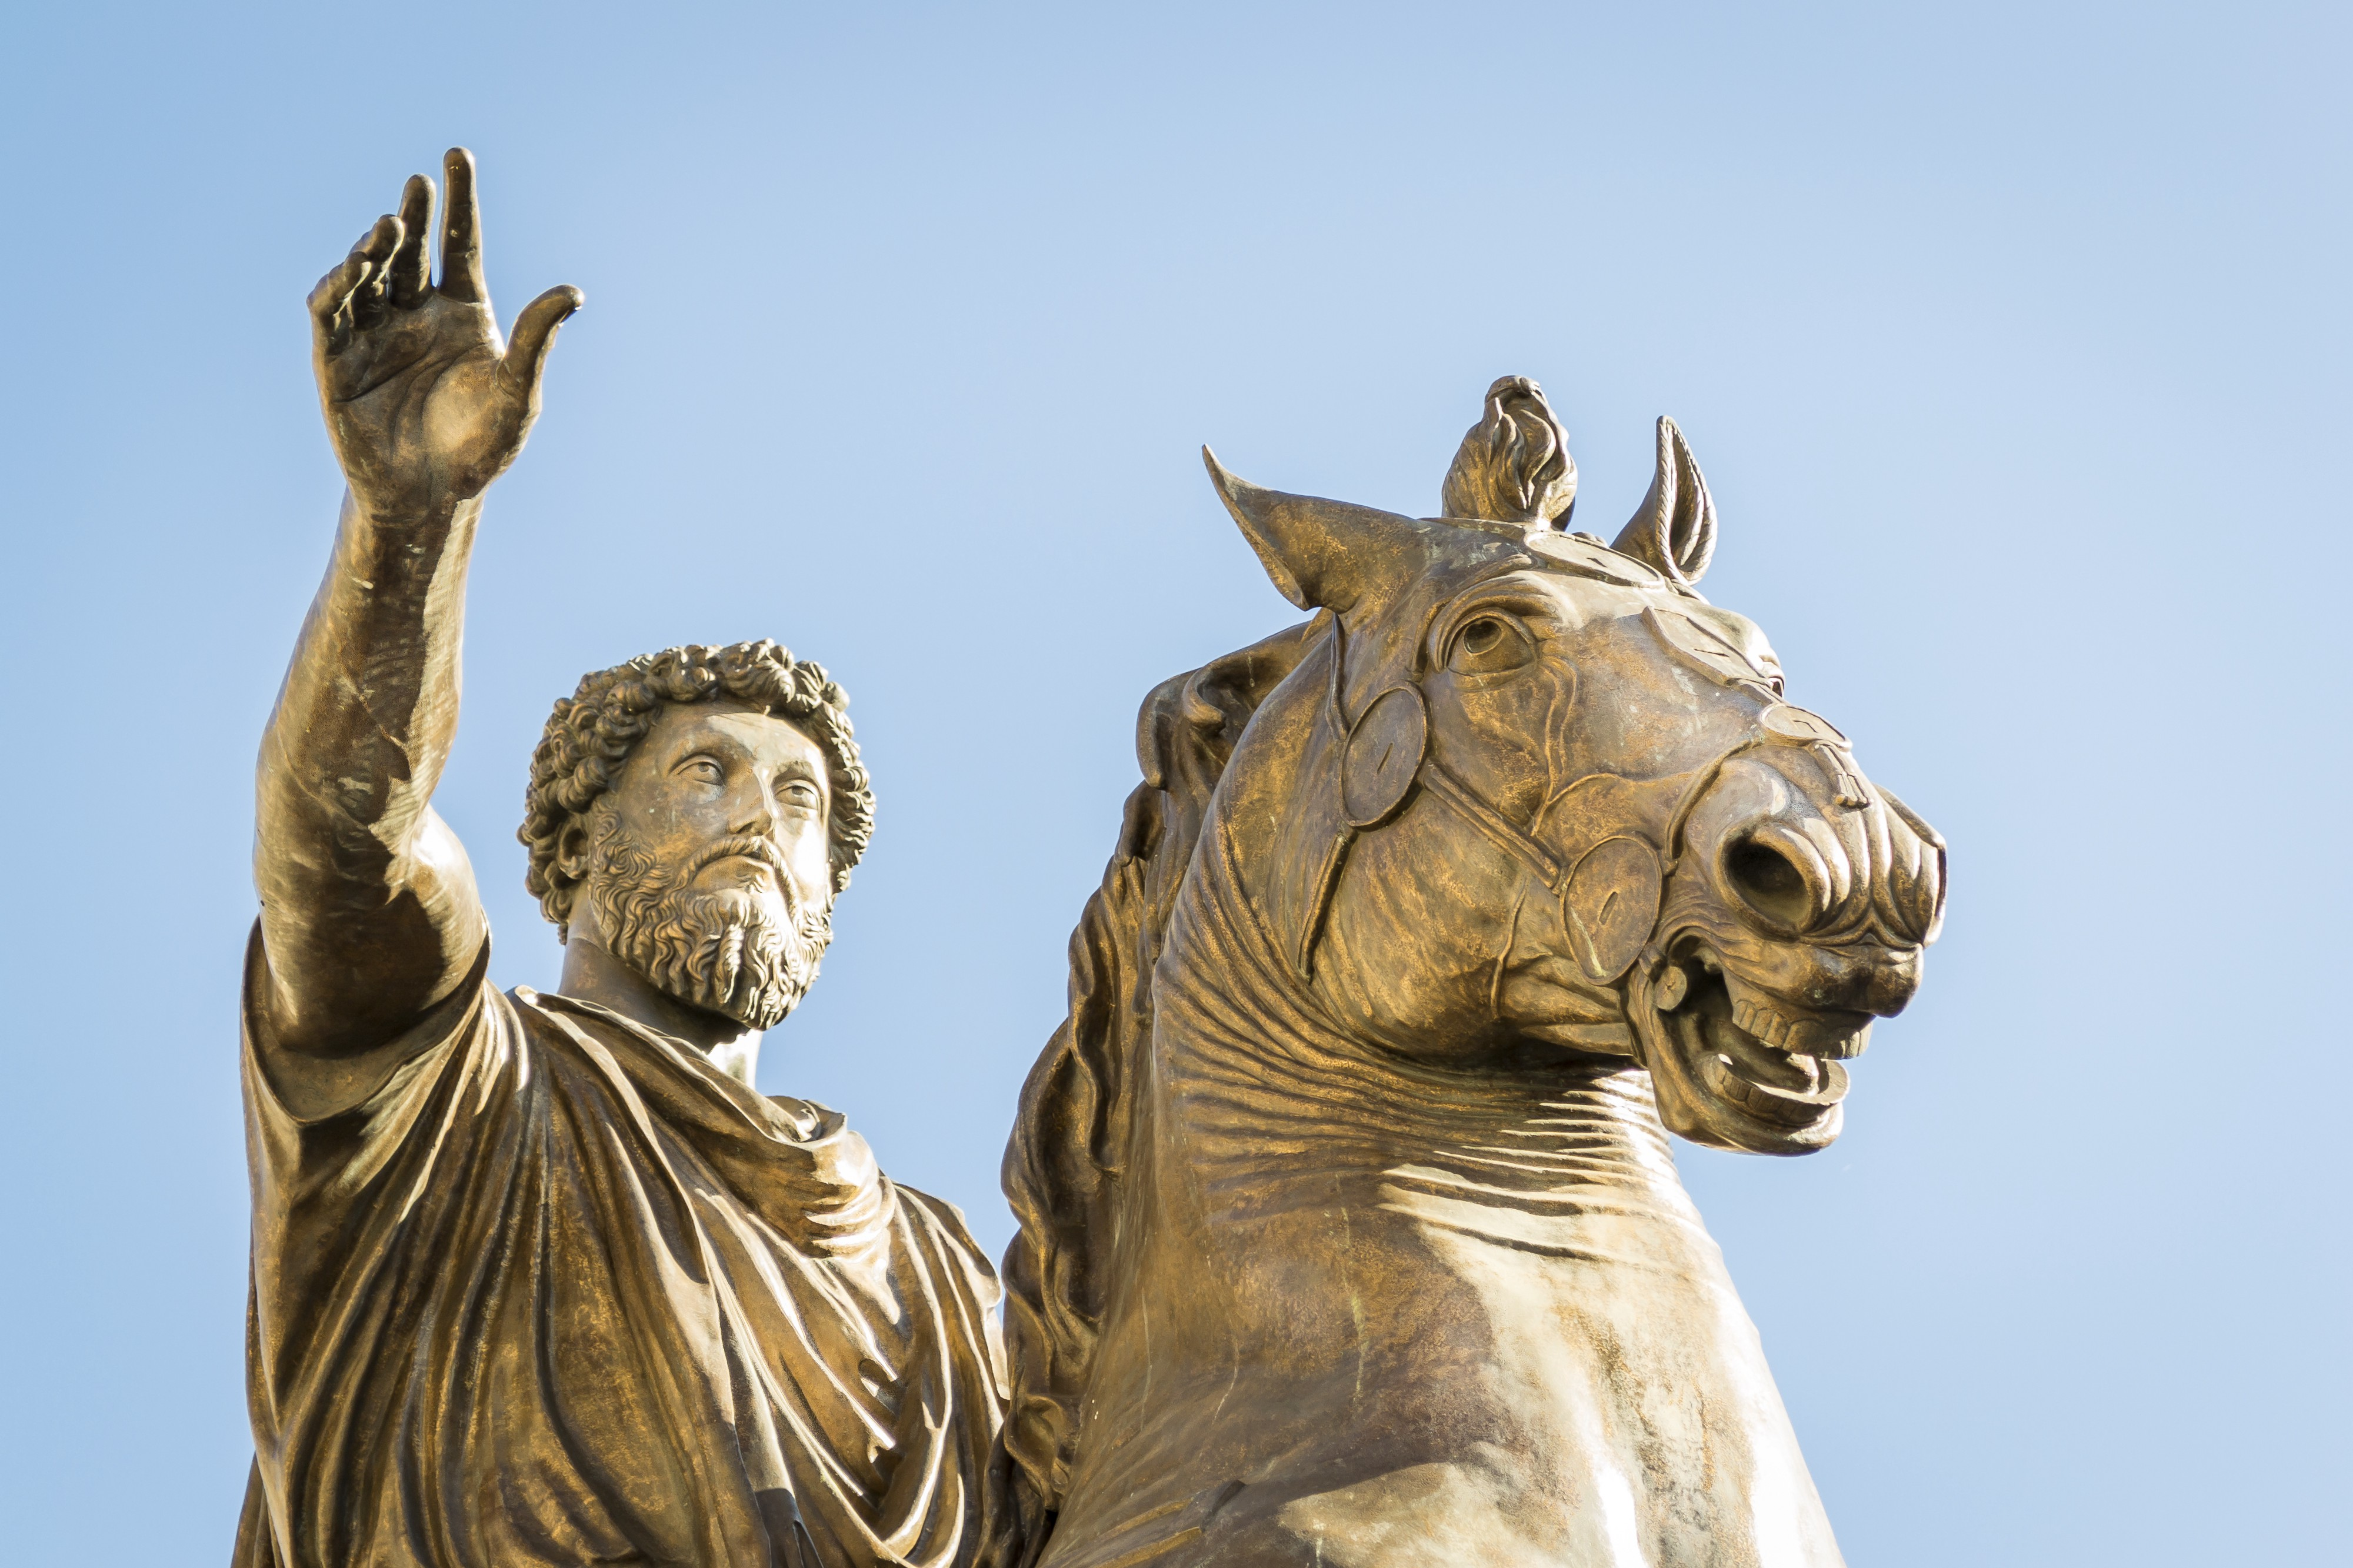 A statue of Marcus Aurelius on the Capitoline Hill in Rome.